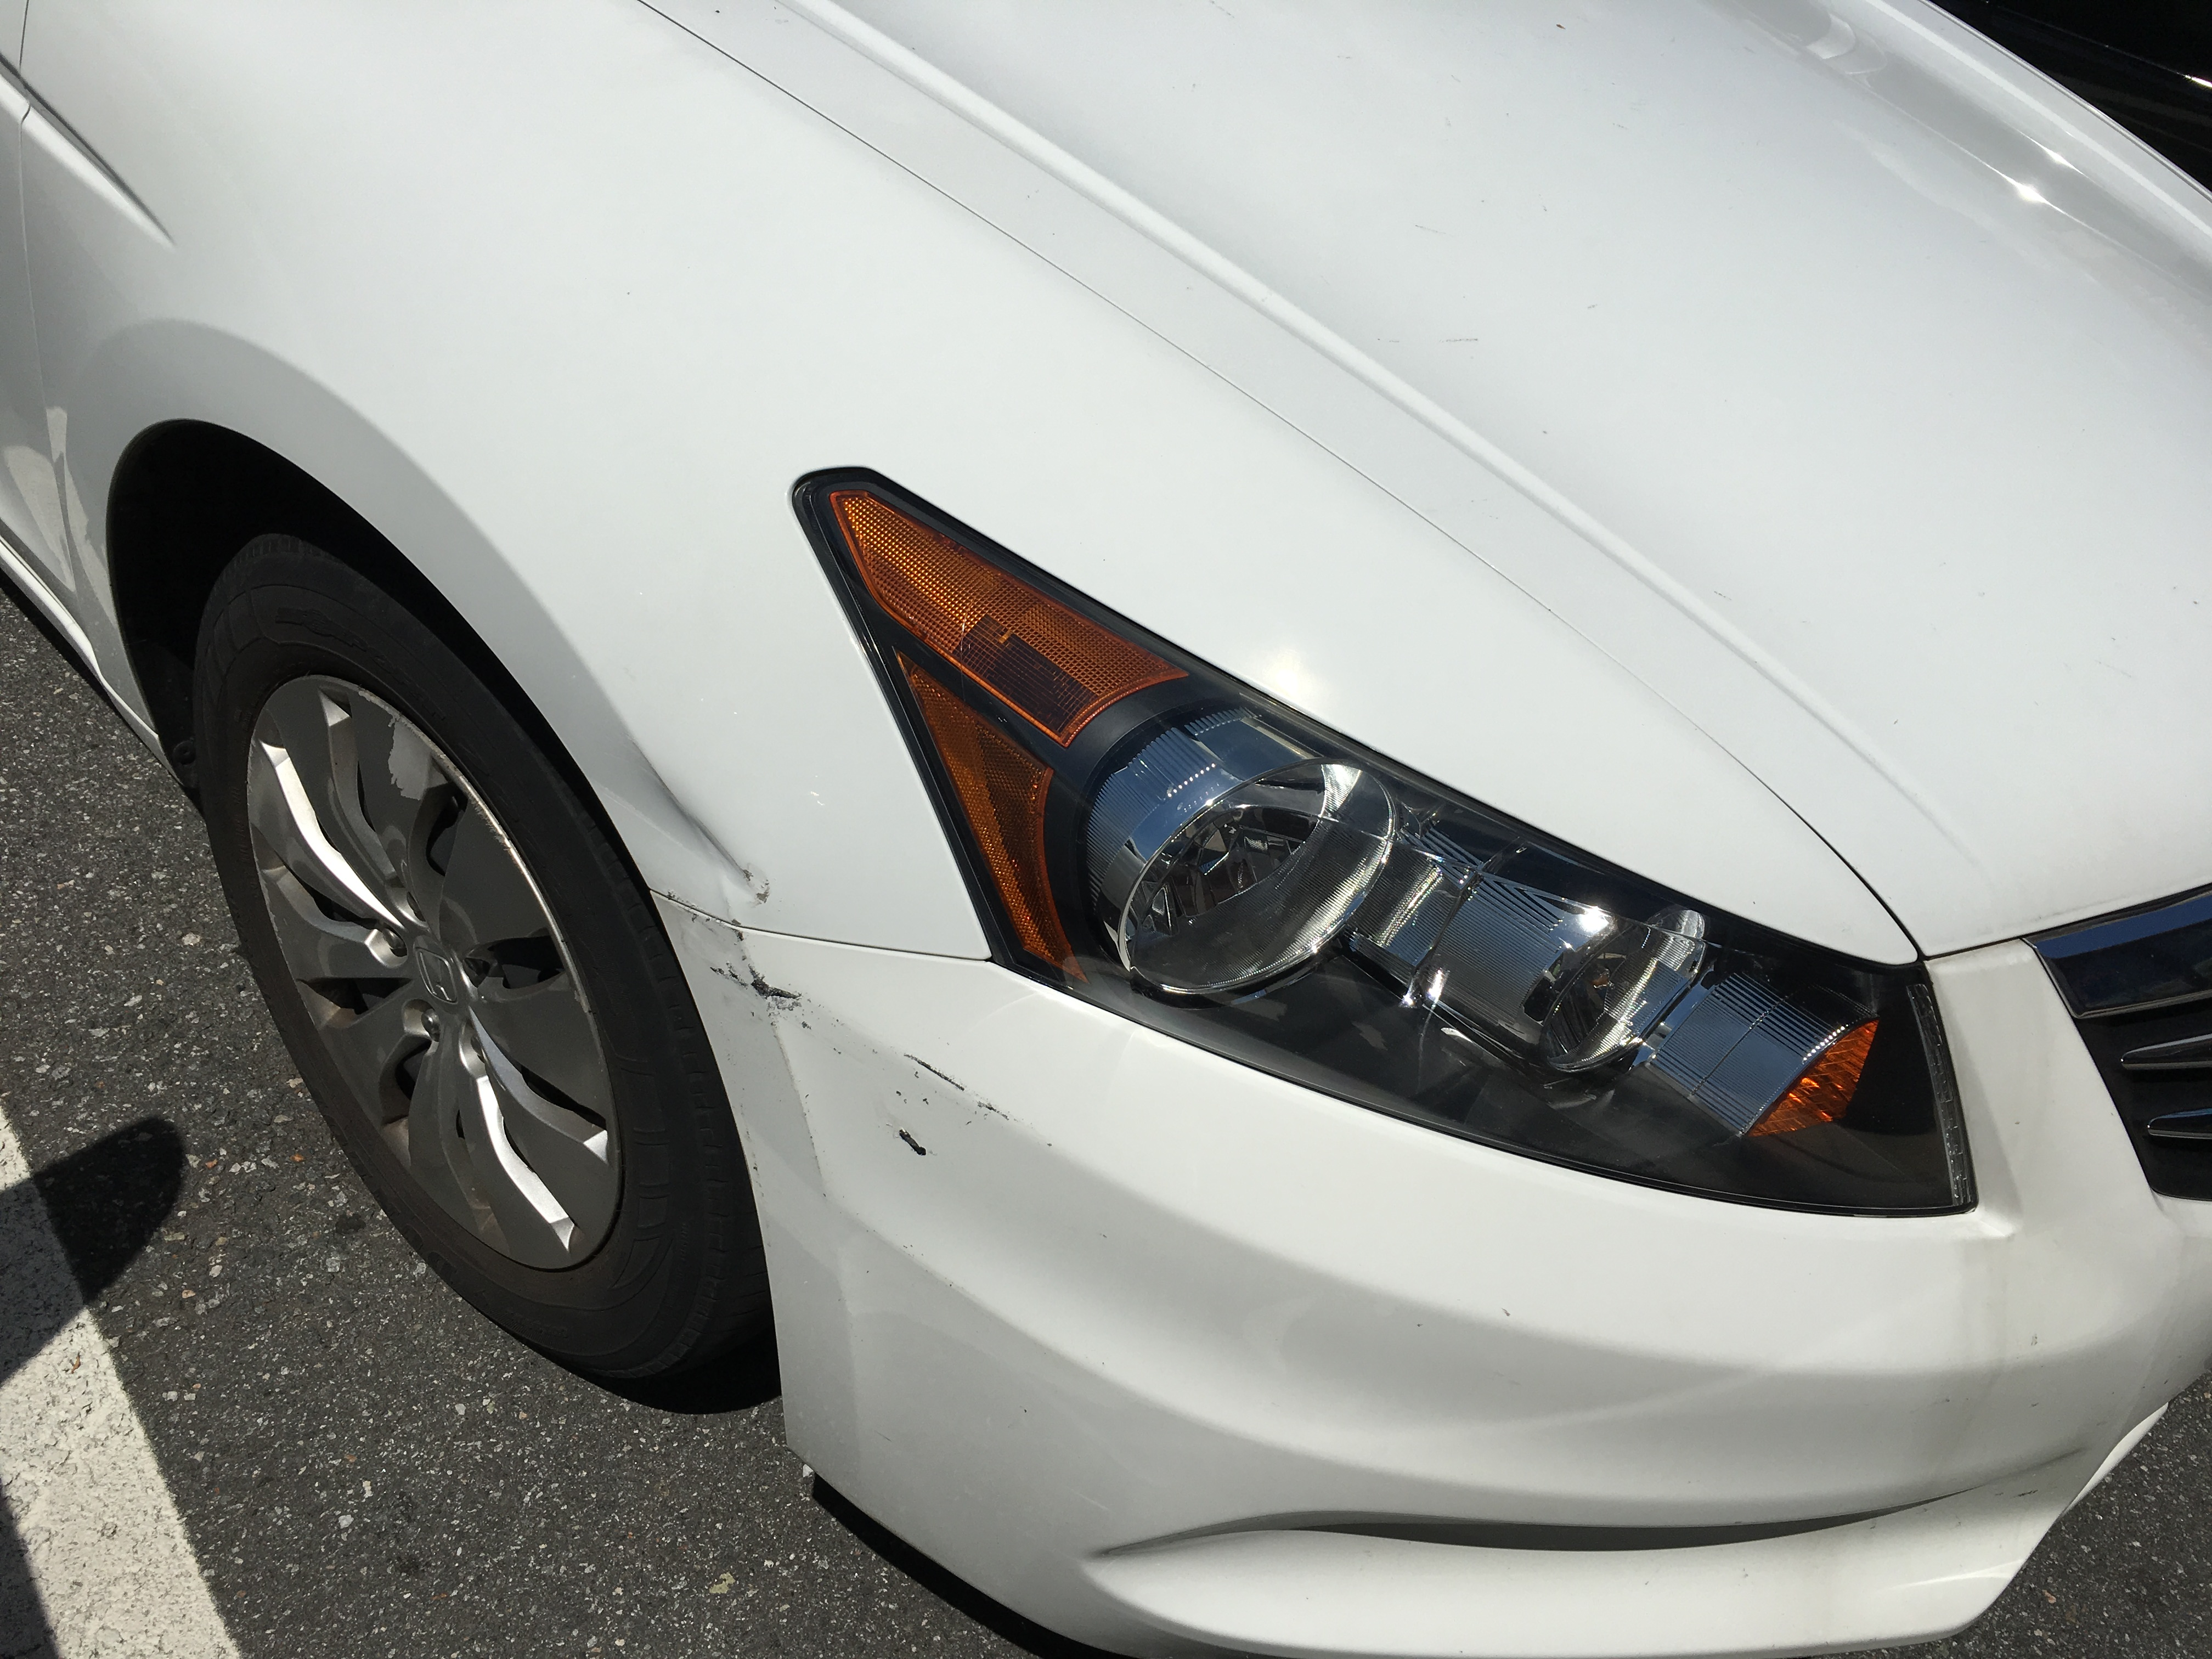 Need An Estimate For 2017 Honda Accord Front Side Fender Bender Repair Cost Please See The Photo Damage